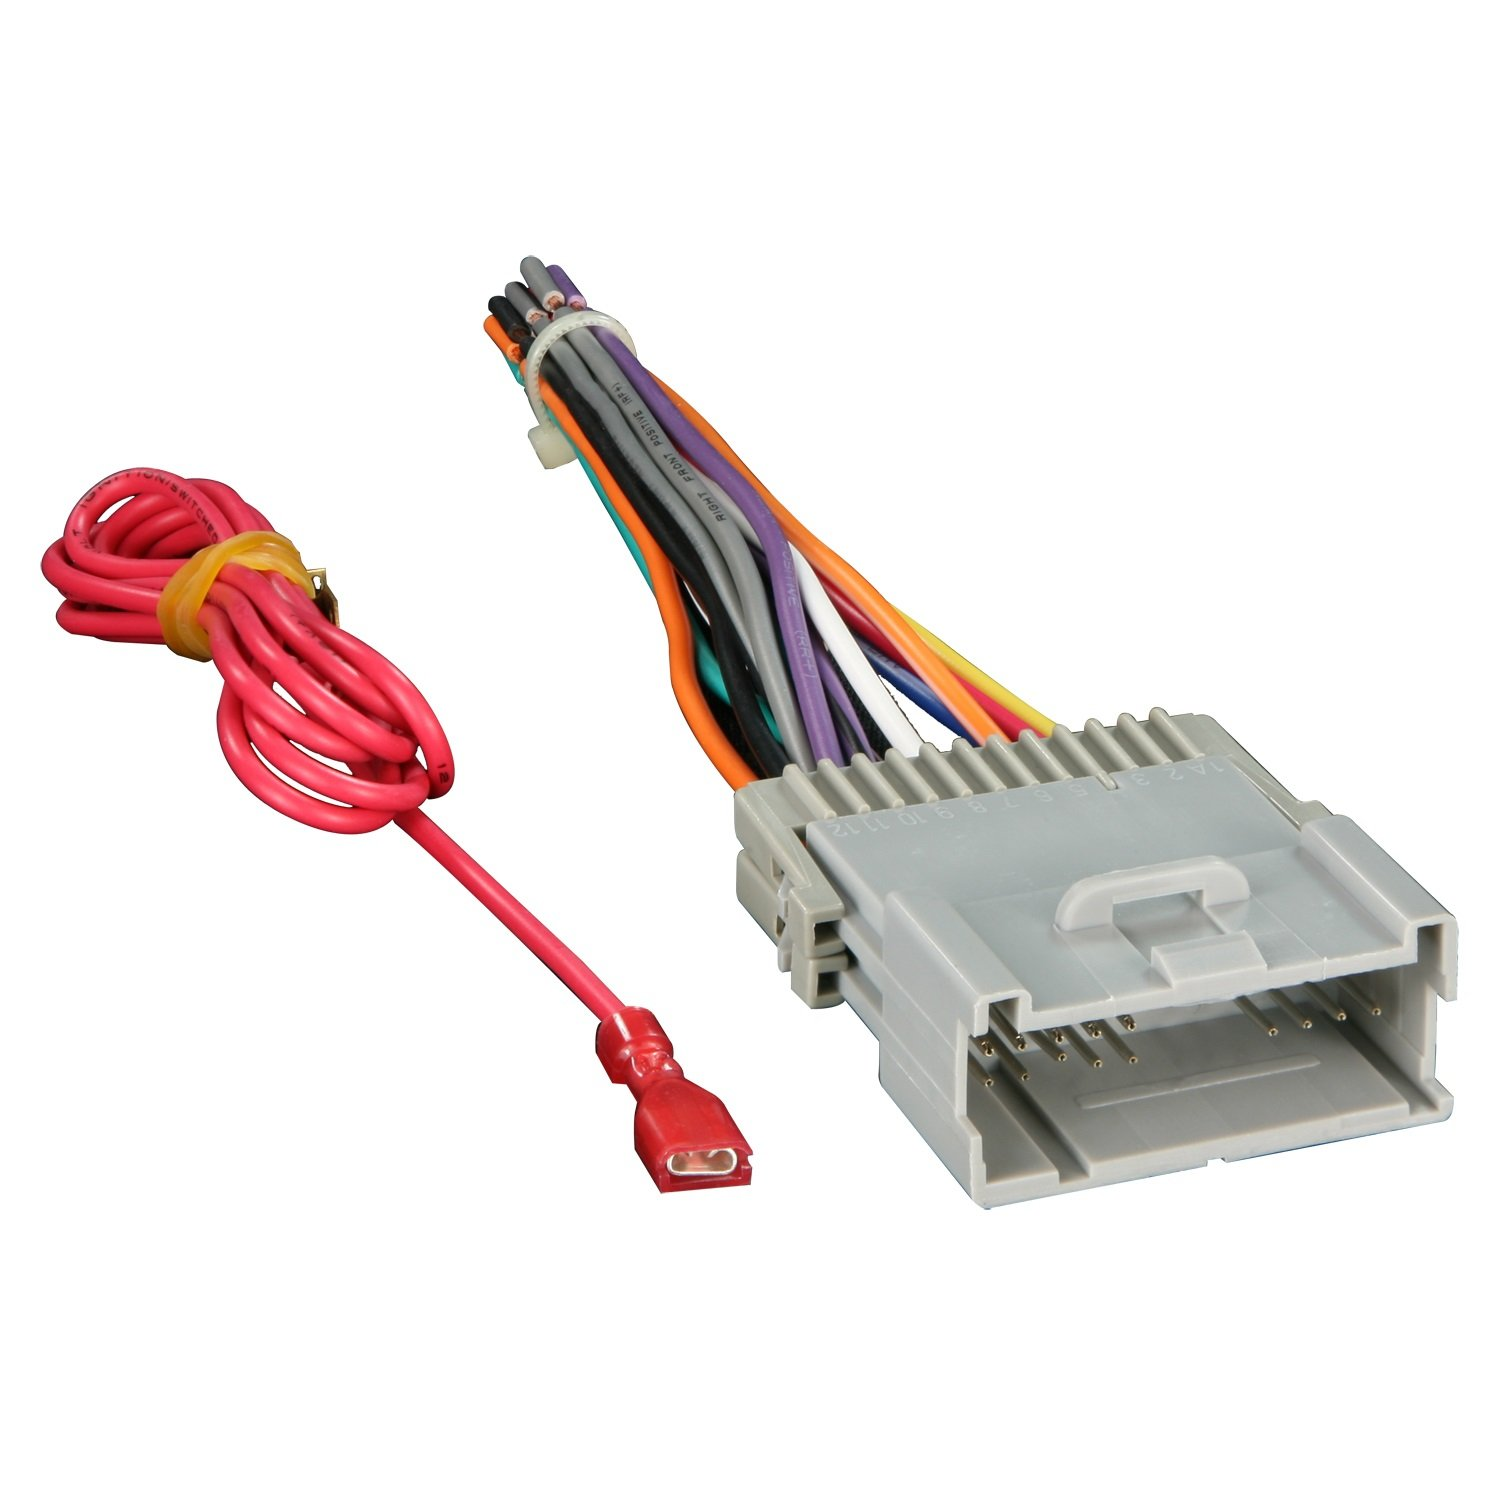 61eewxp9orL._SL1500_ amazon com metra 70 2003 radio wiring harness for gm 98 08 Trailer Wiring Harness Adapter at fashall.co